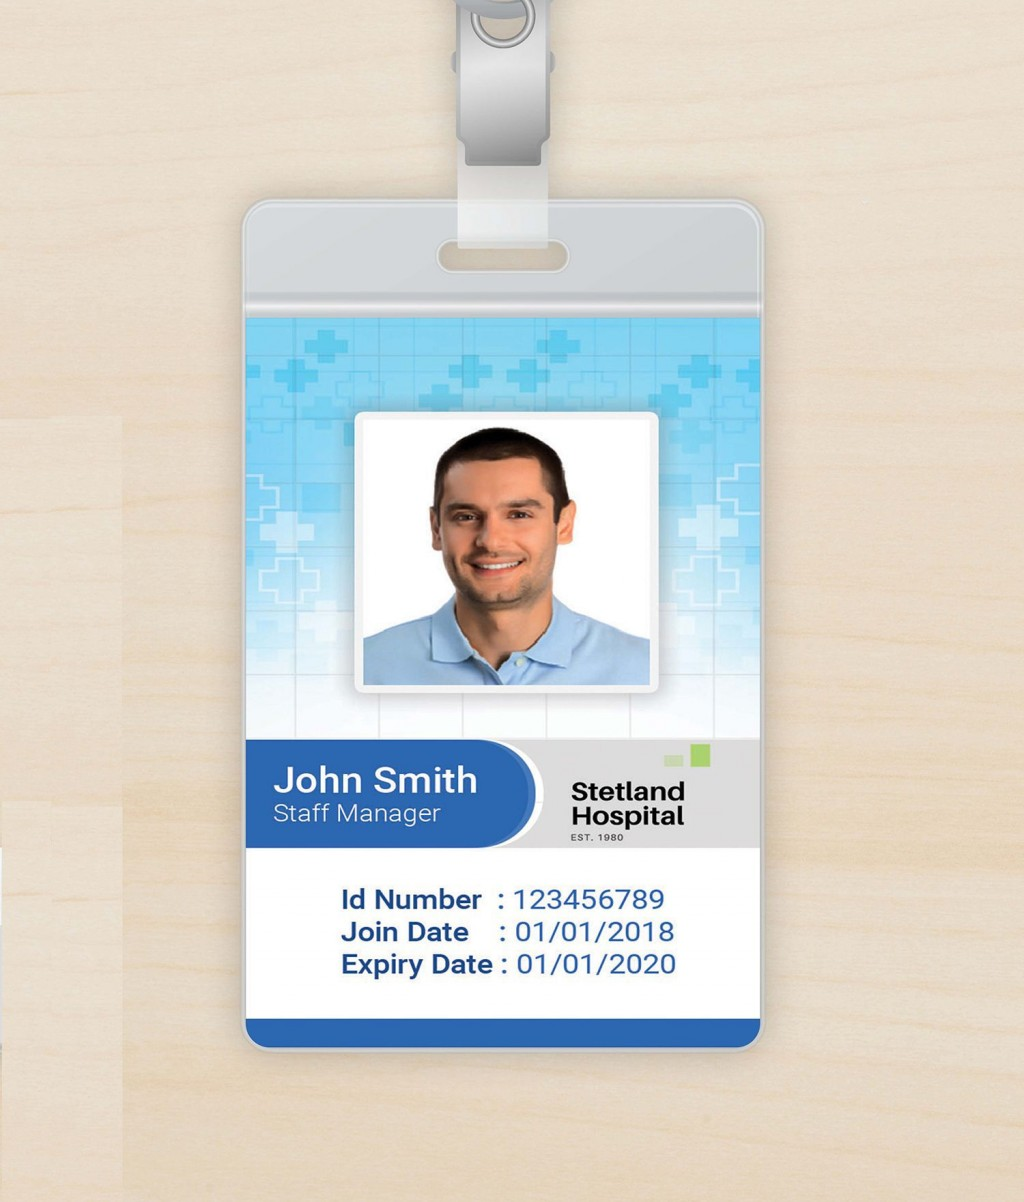 003 Unforgettable Id Badge Template Free Online Idea Large